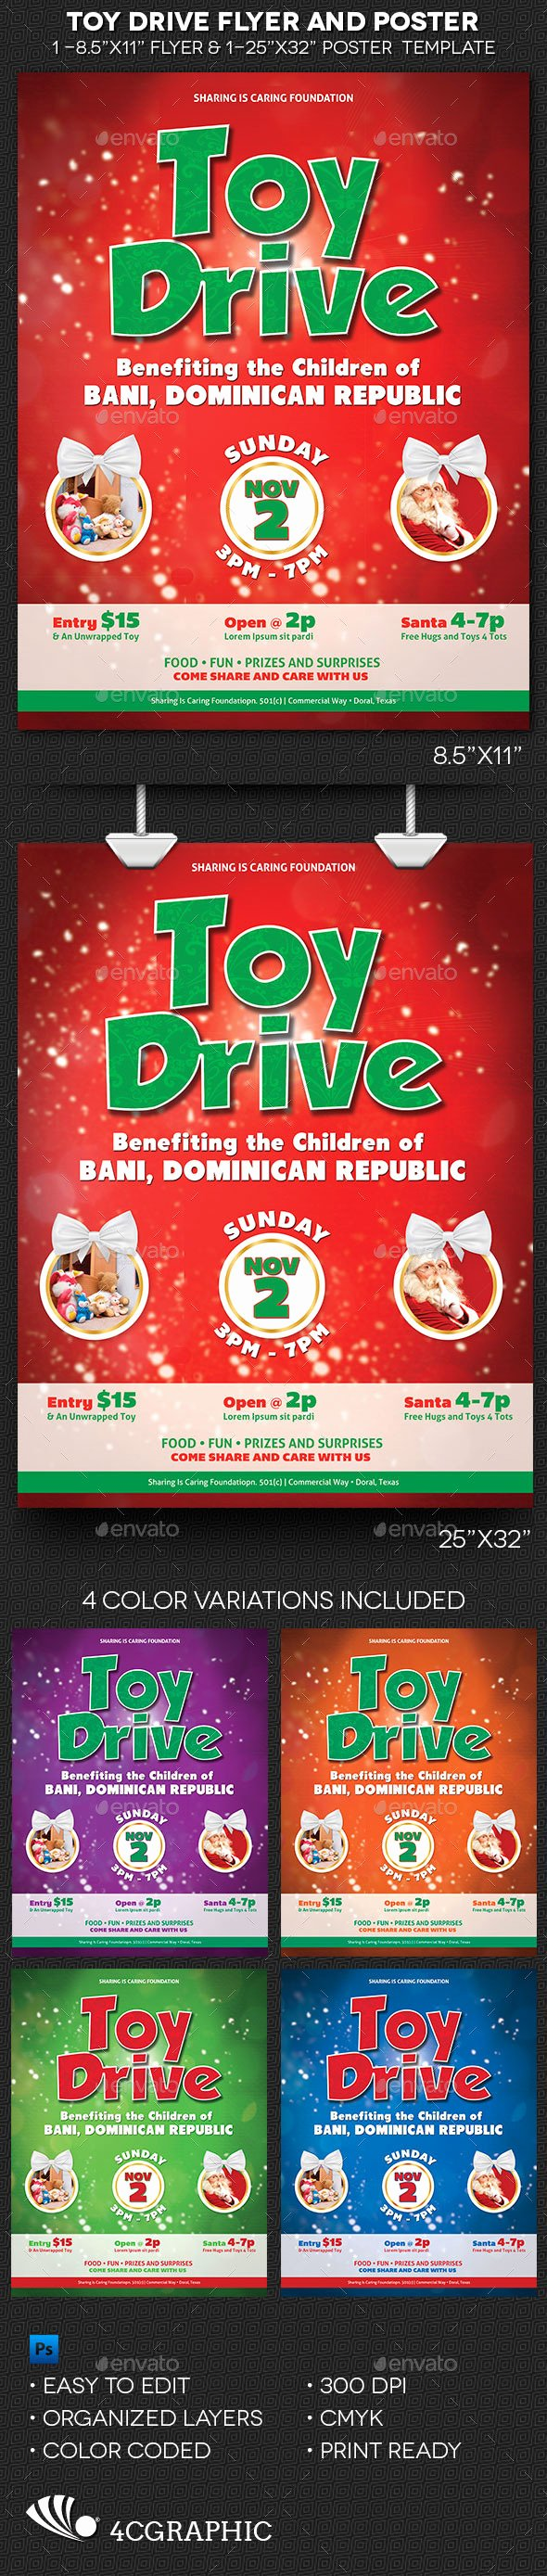 Toy Drive Flyer Template Free Best Of Free Book Drive Flyer In Word Tinkytyler Stock S & Graphics